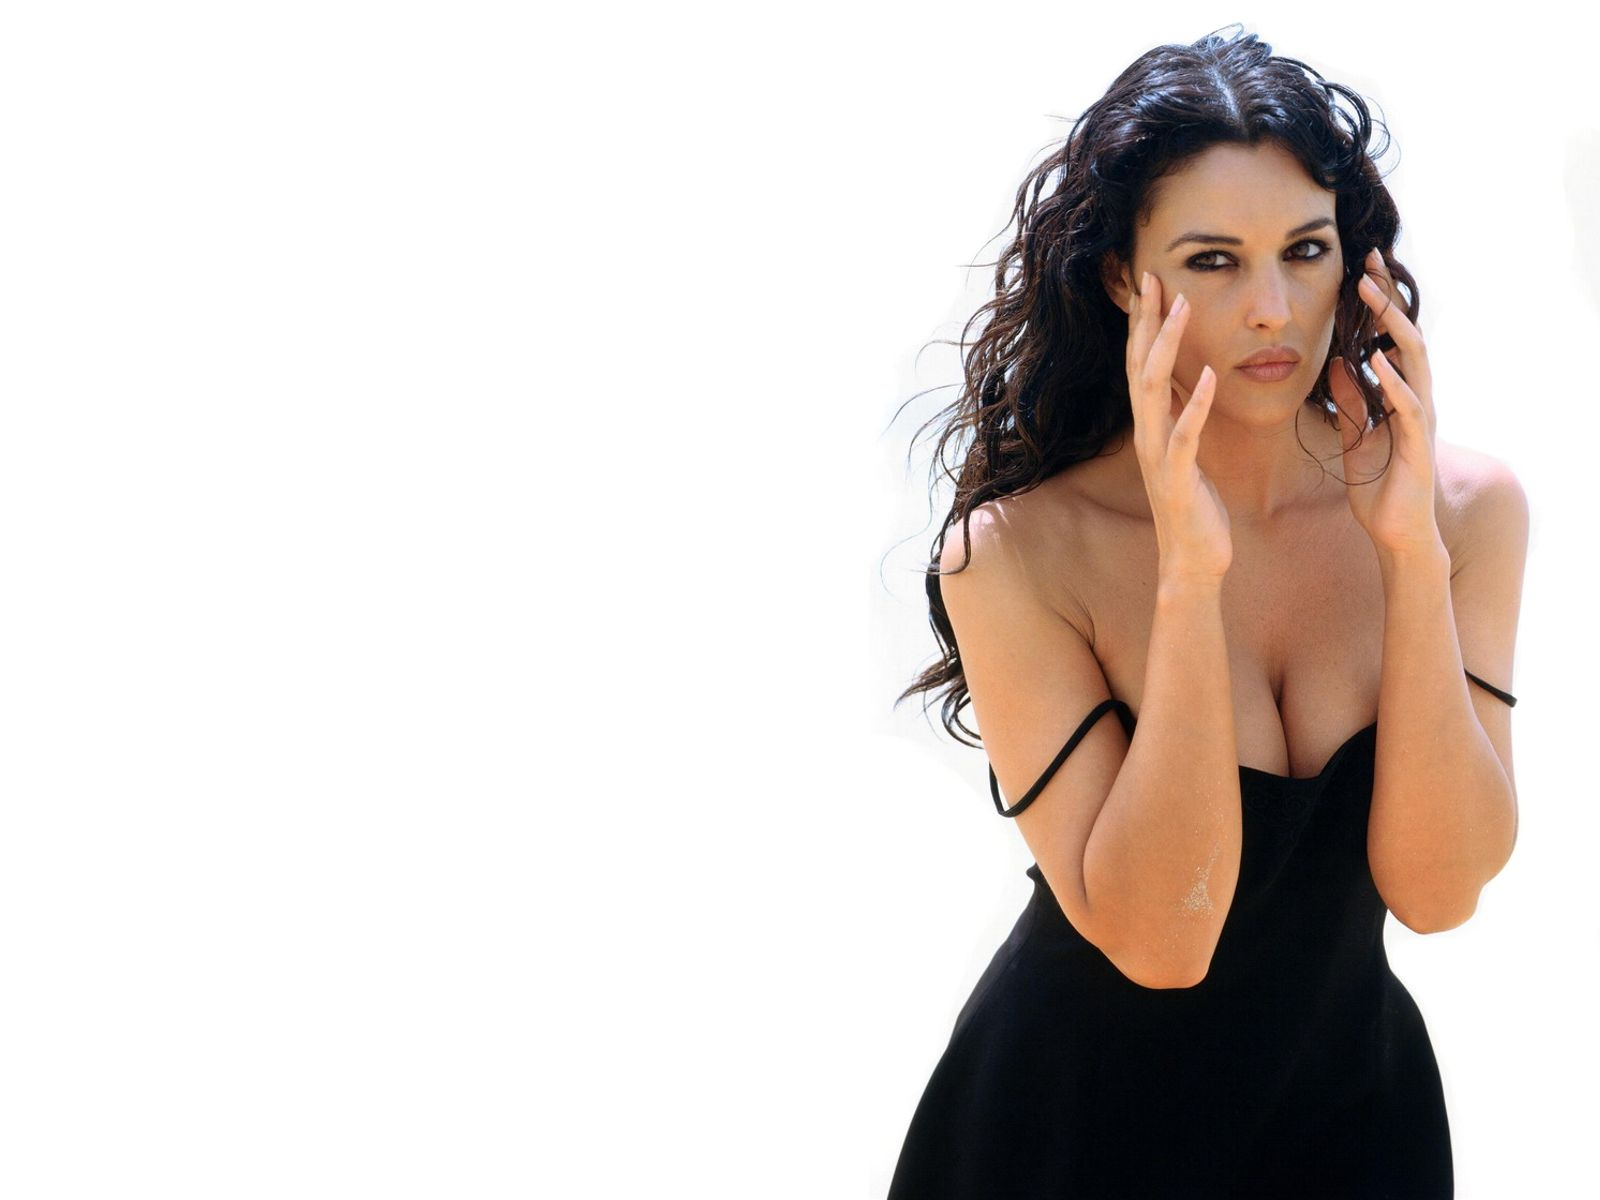 The Wallpapers: Monica Bellucci